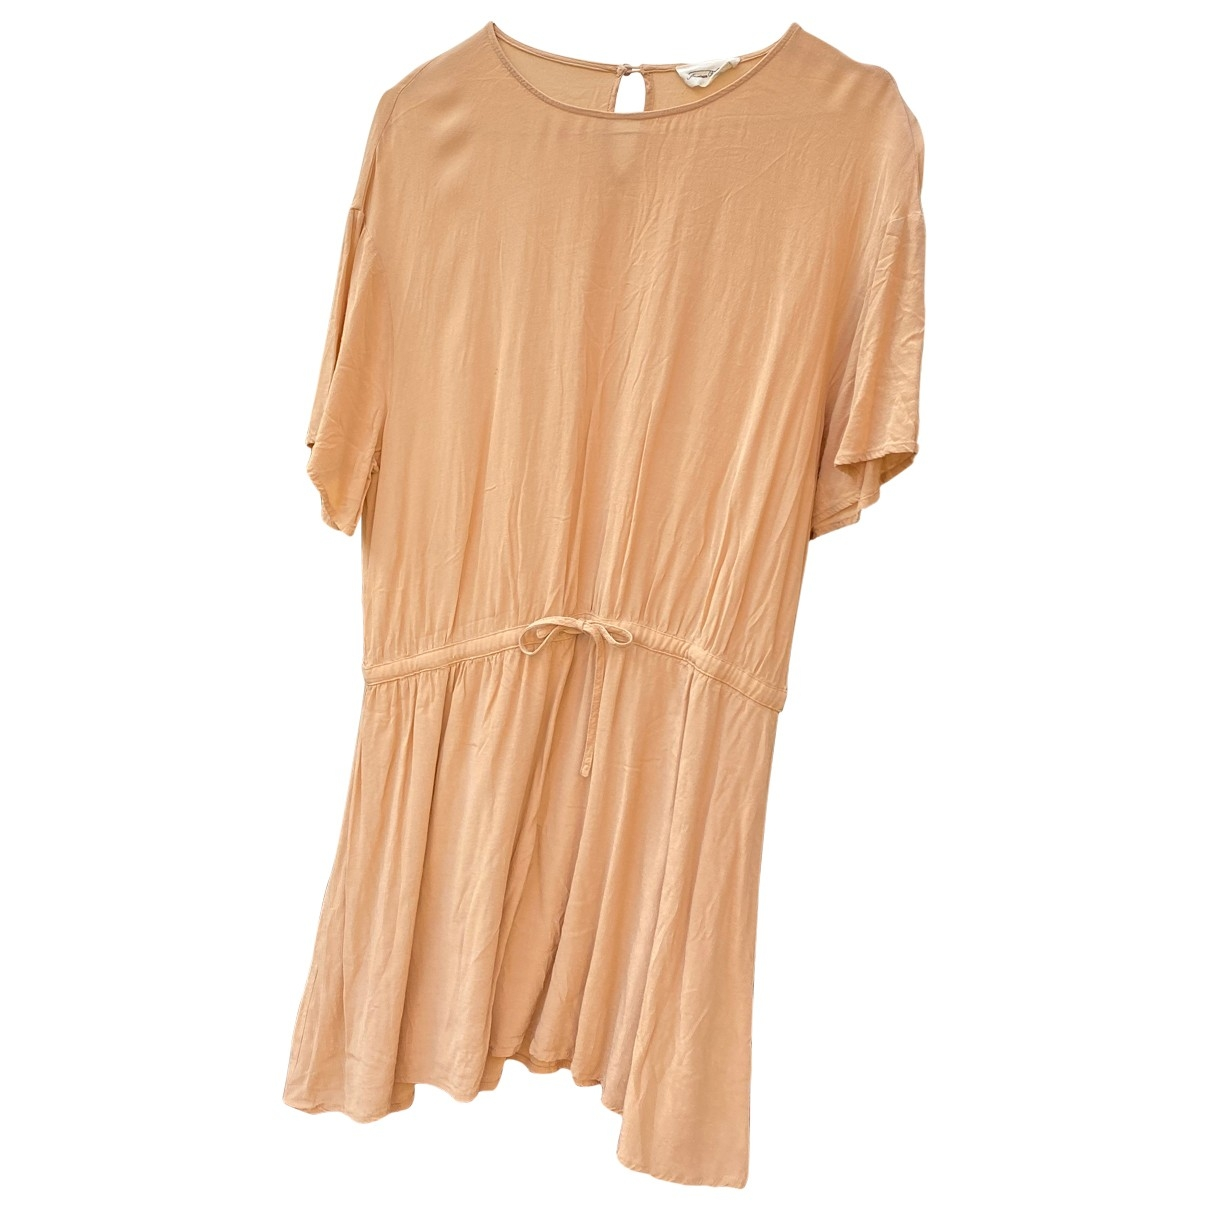 American Vintage \N Beige dress for Women 36 FR